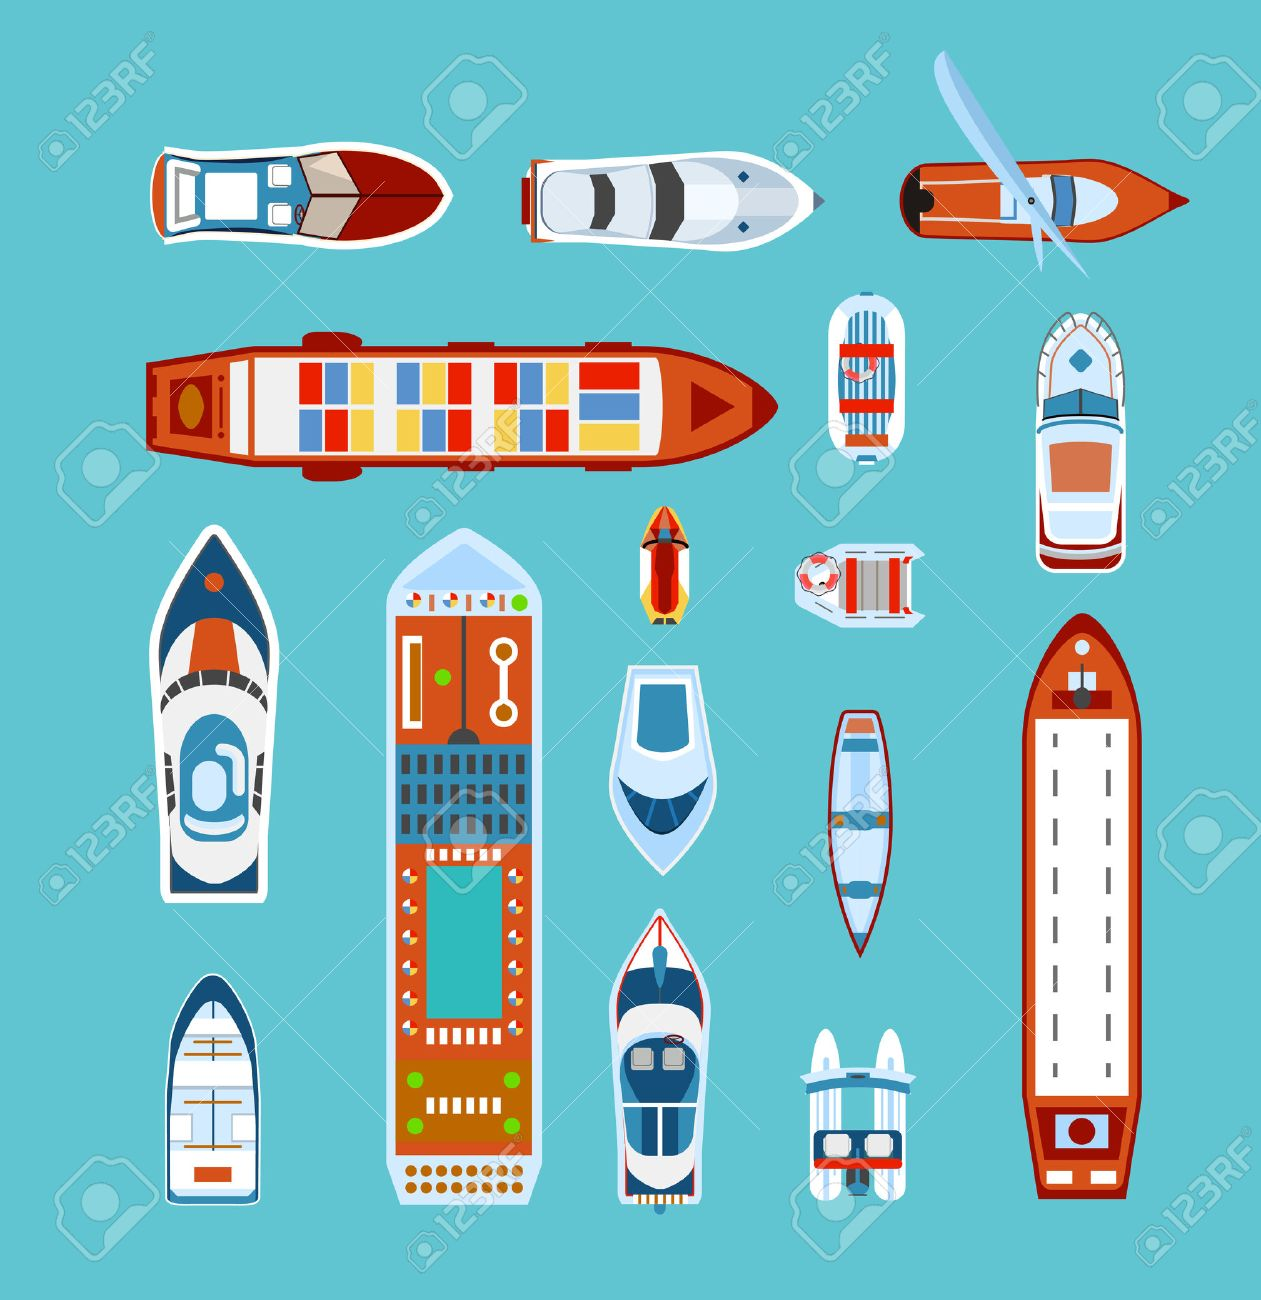 Various ships and boats types on water view from above with cruise liner abstract vector illustration - 47625369